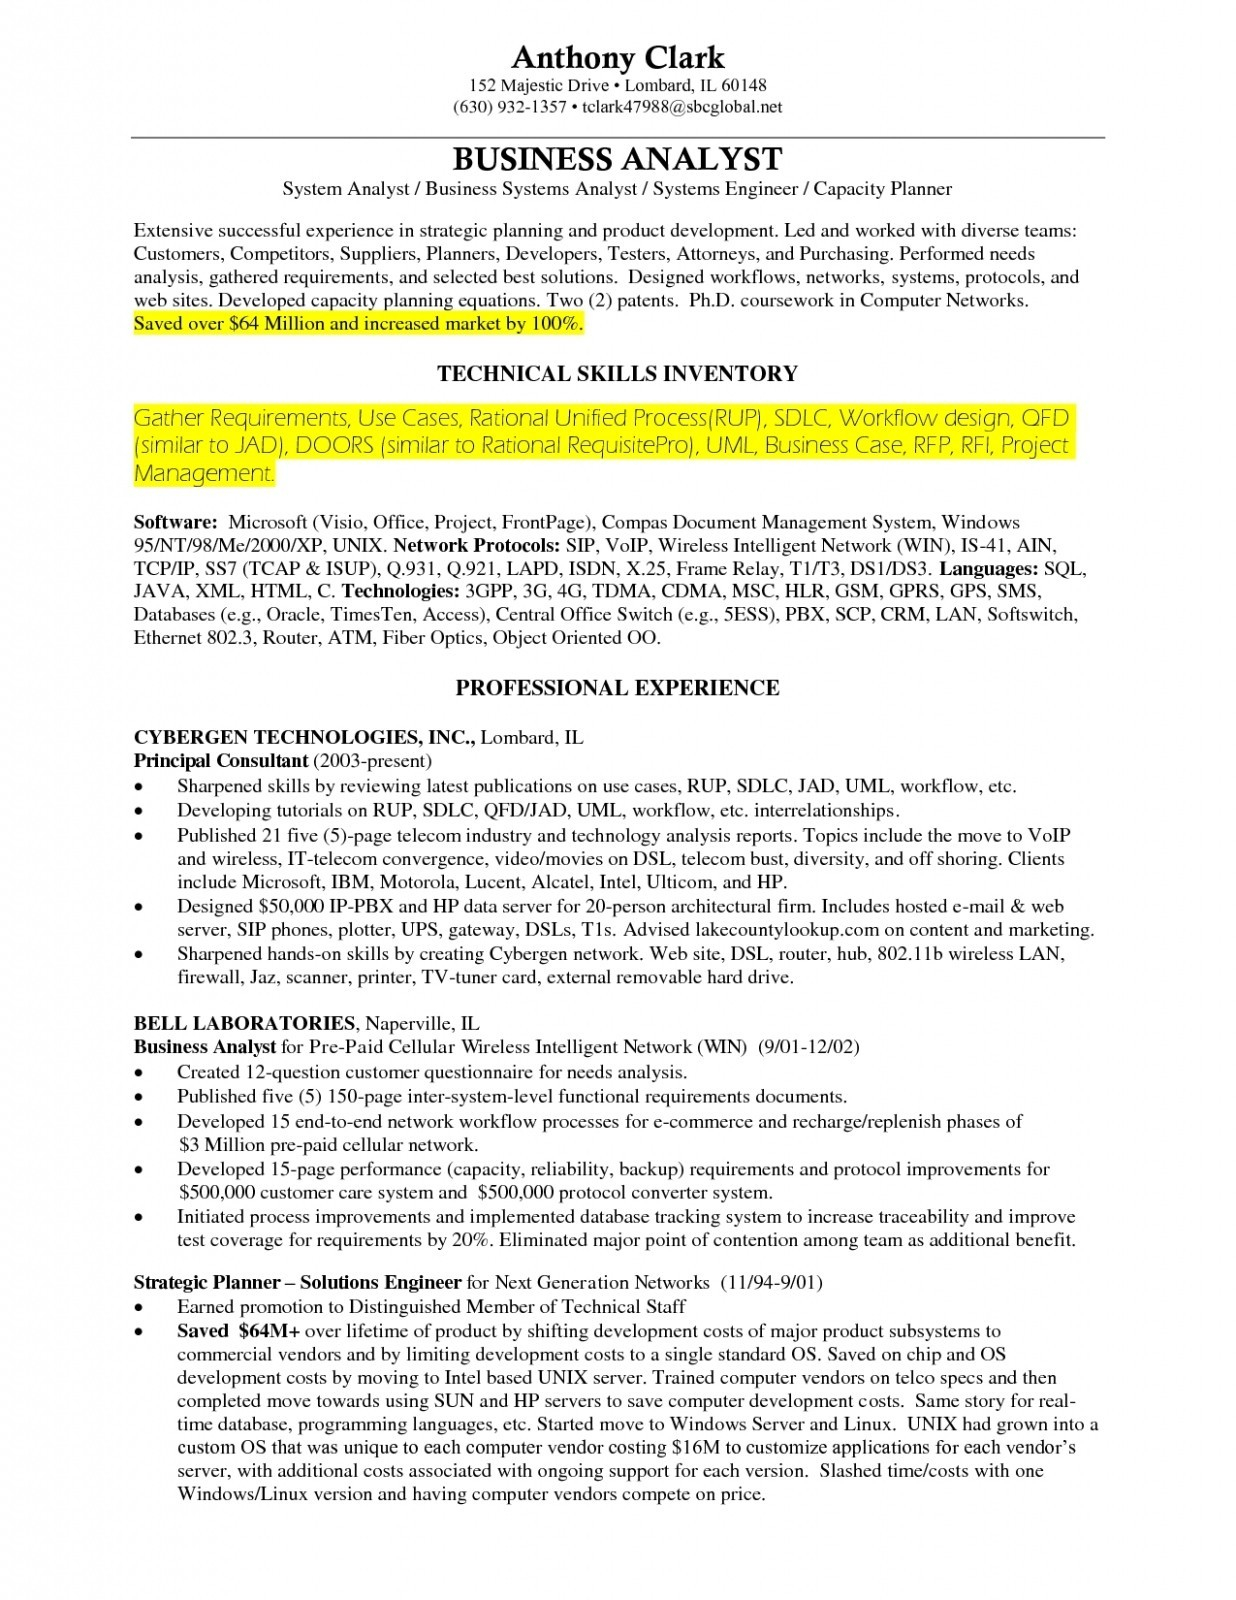 Business Analyst Resume Sample Pdf - Business Systems Analyst Resume Sample New Business Analyst Cv